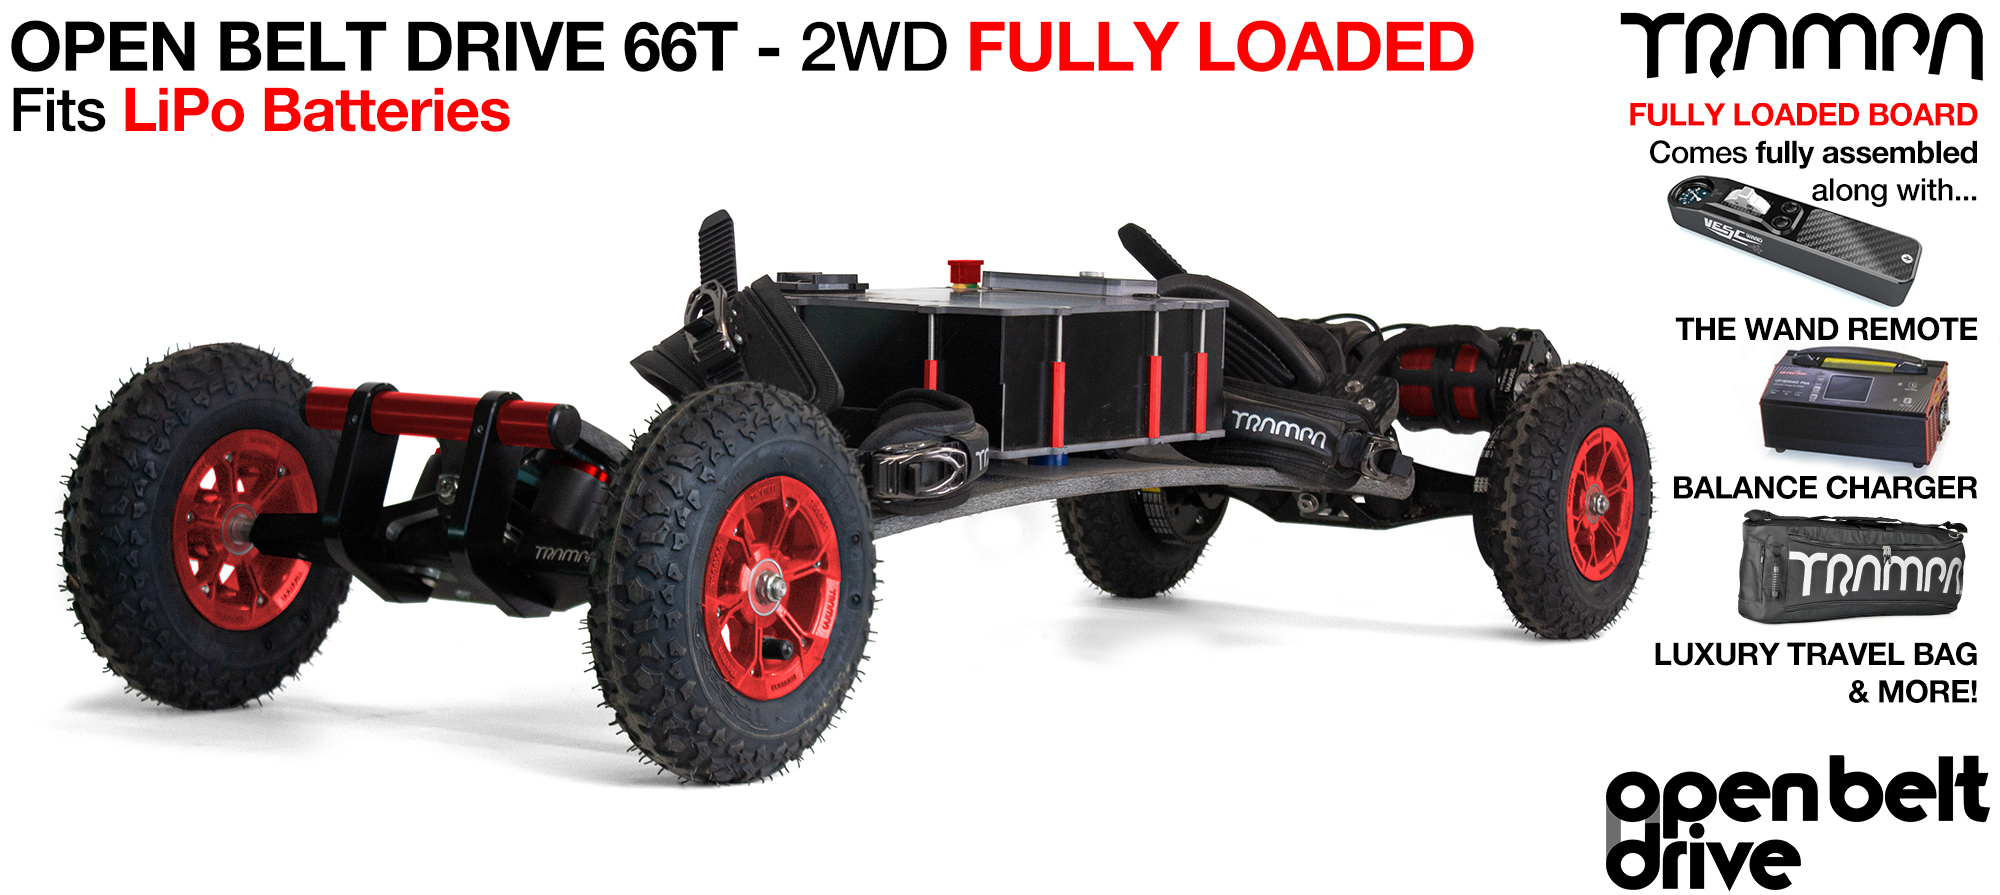 OPEN BELT DRIVE Electric Mountainboard with MONSTER Box with 8 inch Wheels & Twin Motor - LOADED Li-Po